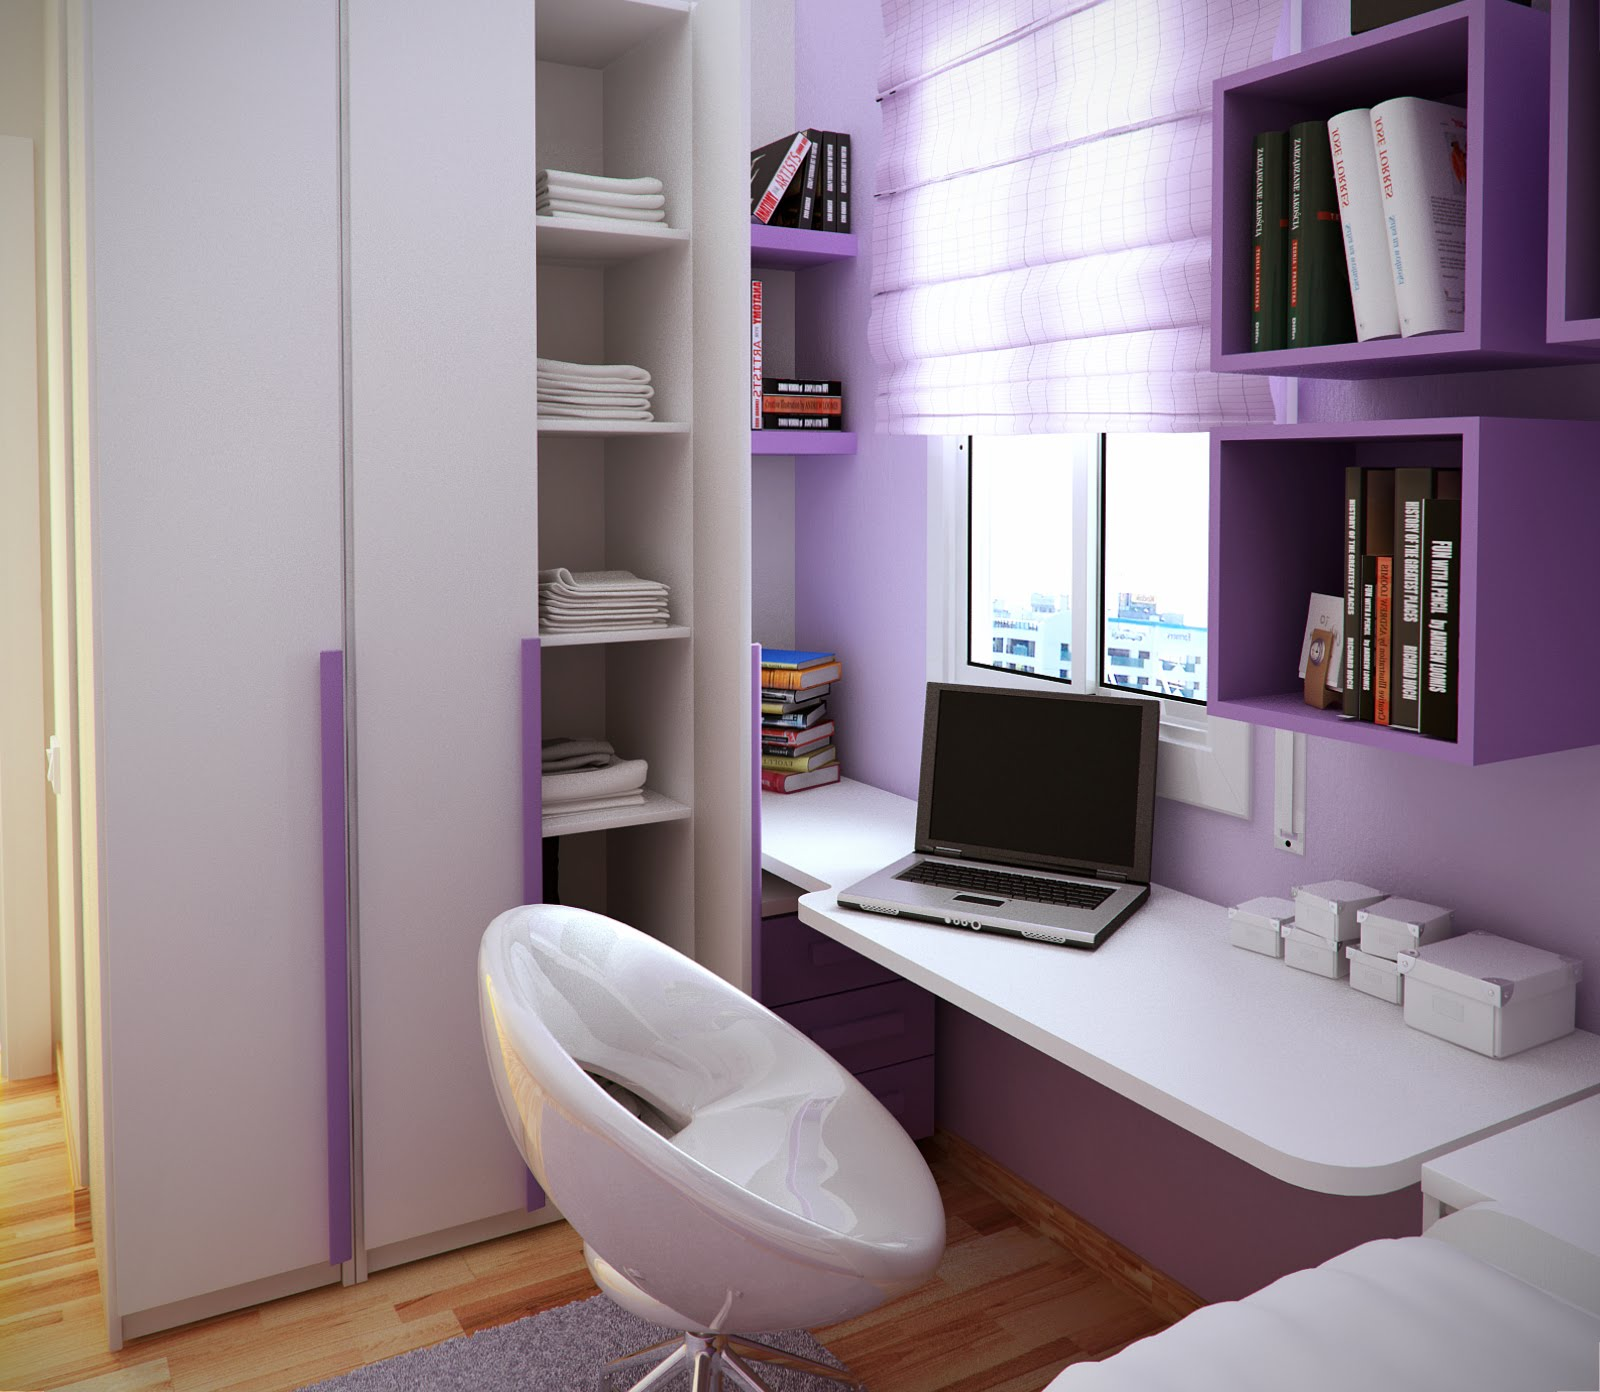 10 Tips on Small Bedroom Interior Design | Homesthetics ... on Bedroom Ideas Small Room  id=91712